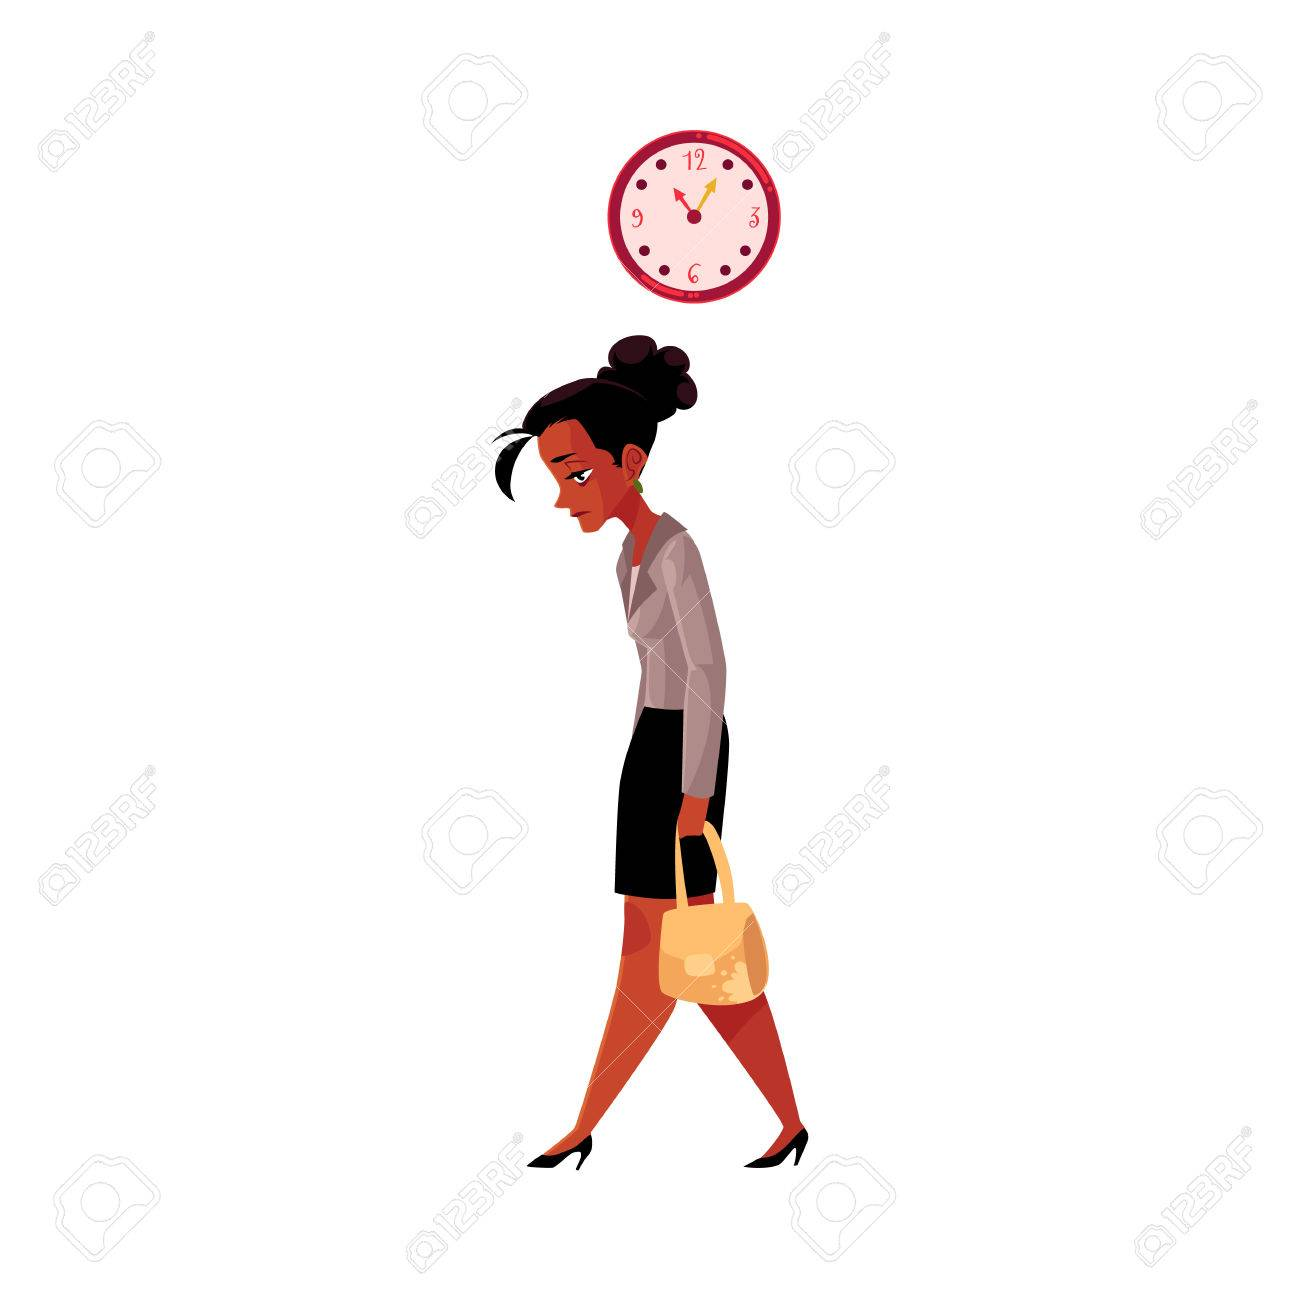 Tired black, African American businesswoman, going home after work, clock showing time, cartoon vector illustration isolated on white background. Black businesswoman sad, tired, going home from work - 80648795